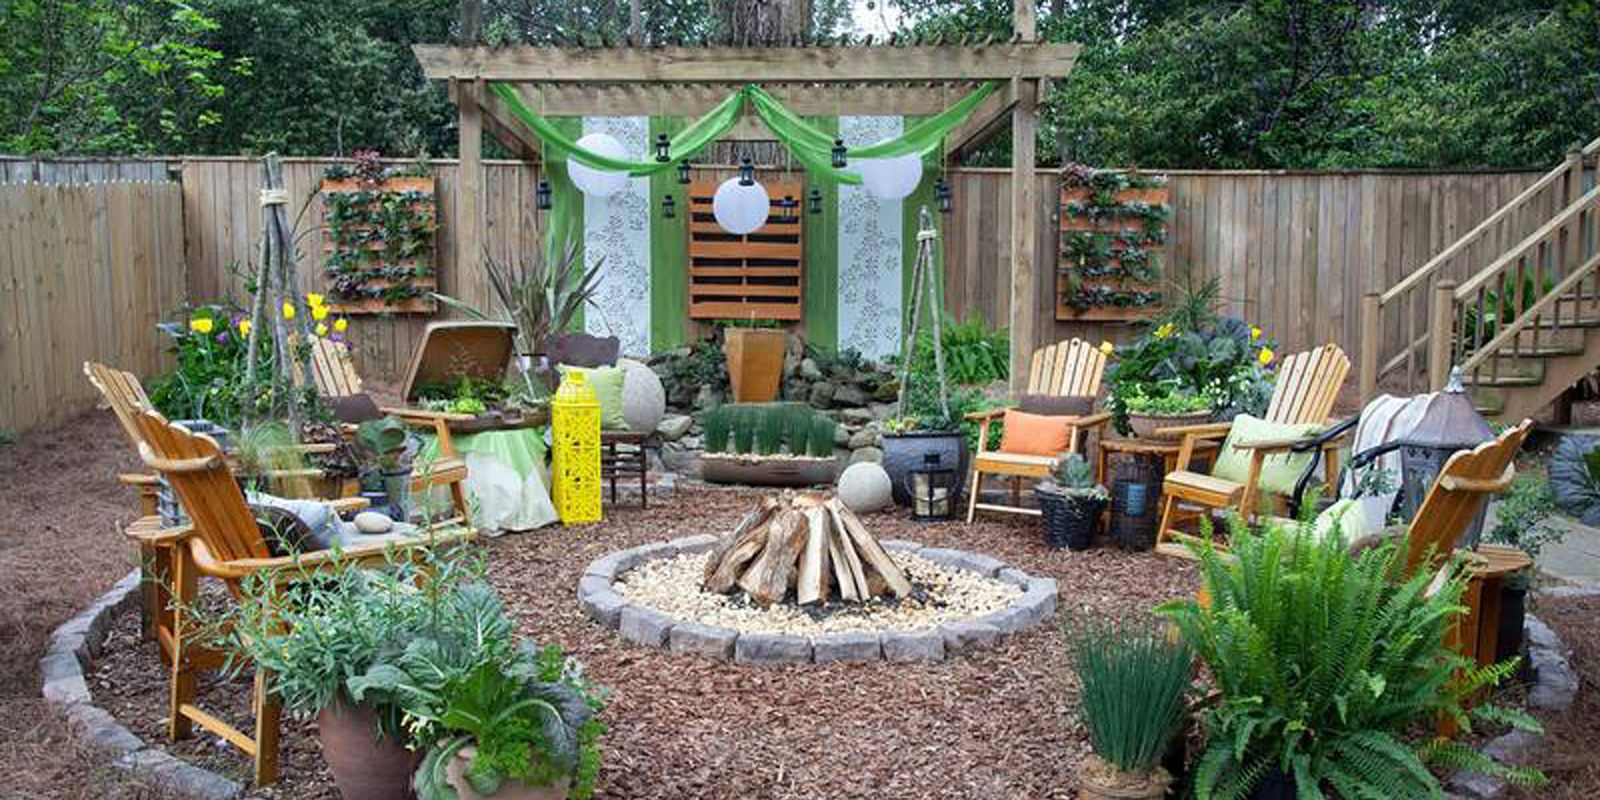 Backyard oasis beautiful backyard ideas - How to create a small outdoor oasis ...